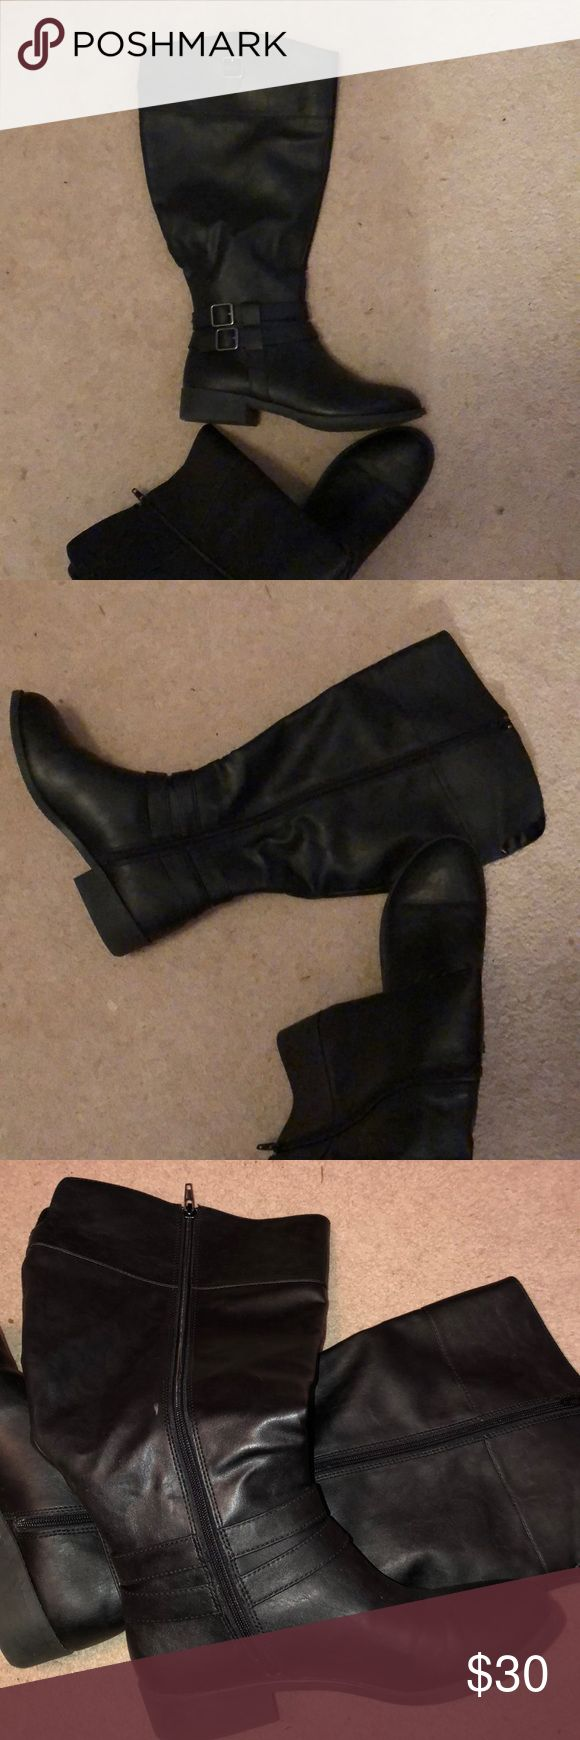 Black riding boots. Size 8.5 wide American Eagle Wide calf boot. Black riding boot style. Size 8 1/2 wide. Barely worn. American Eagle Outfitters Shoes Combat & Moto Boots